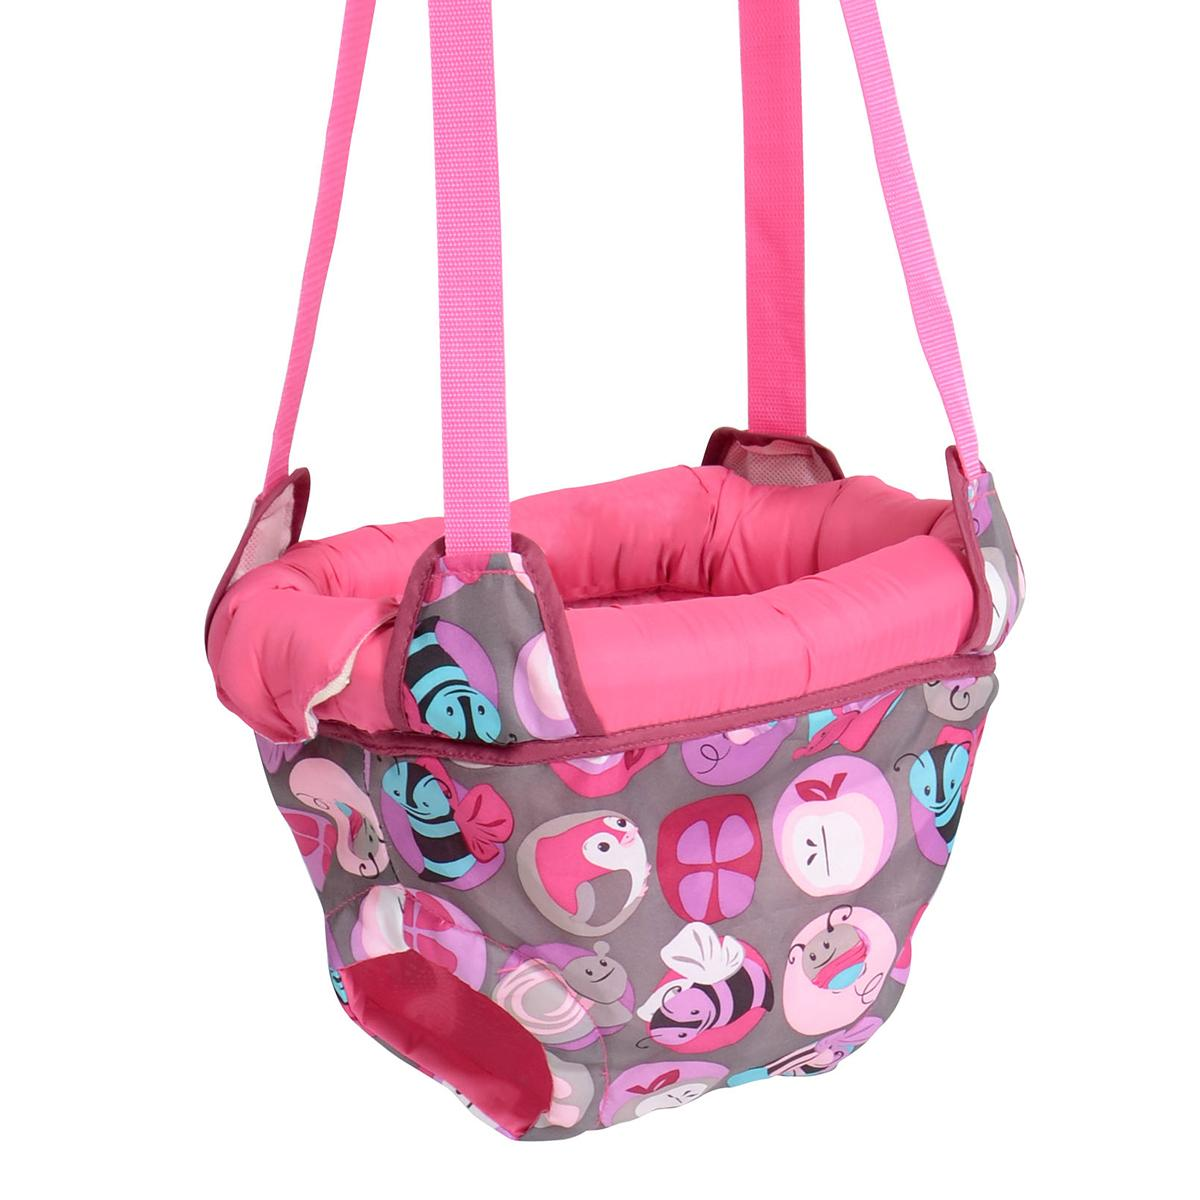 Exersaucer Door Jumper Pink Evenflo